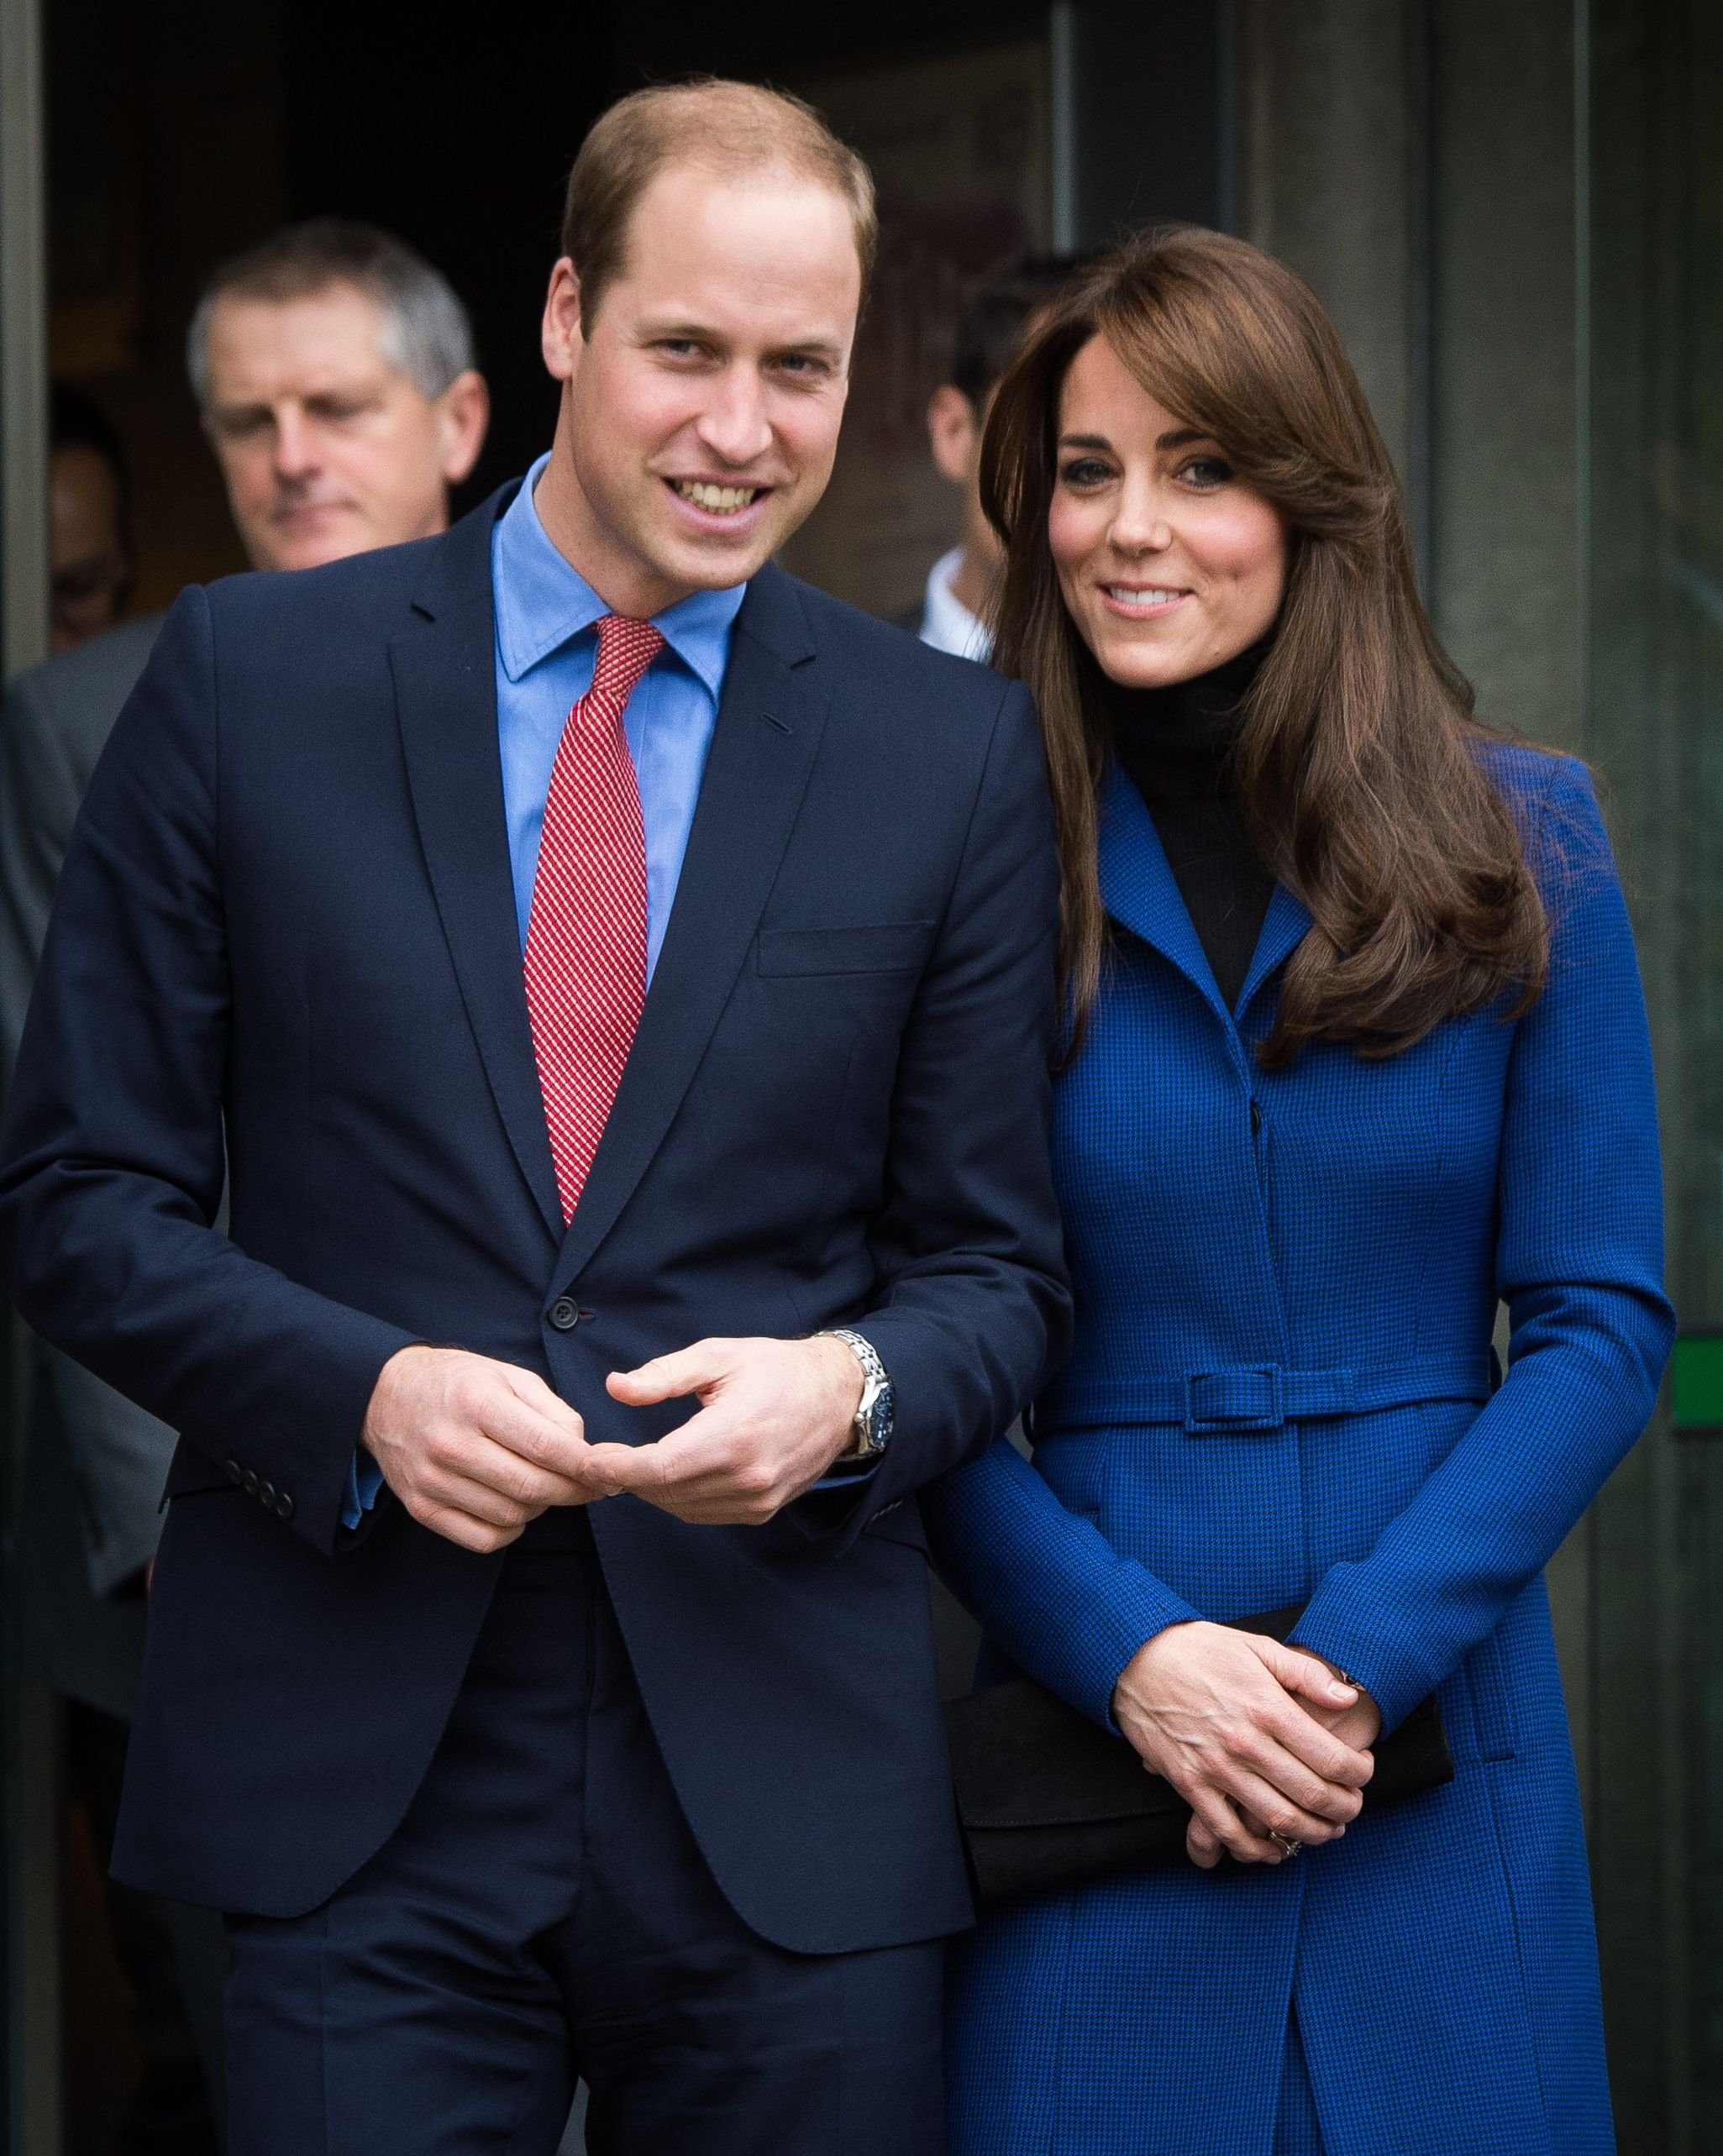 Duchess Kate and Prince William visit Dundee Rep. Theatre on October 23, 2015, in Dundee, Scotland   Photo: Samir Hussein/WireImage/Getty Images